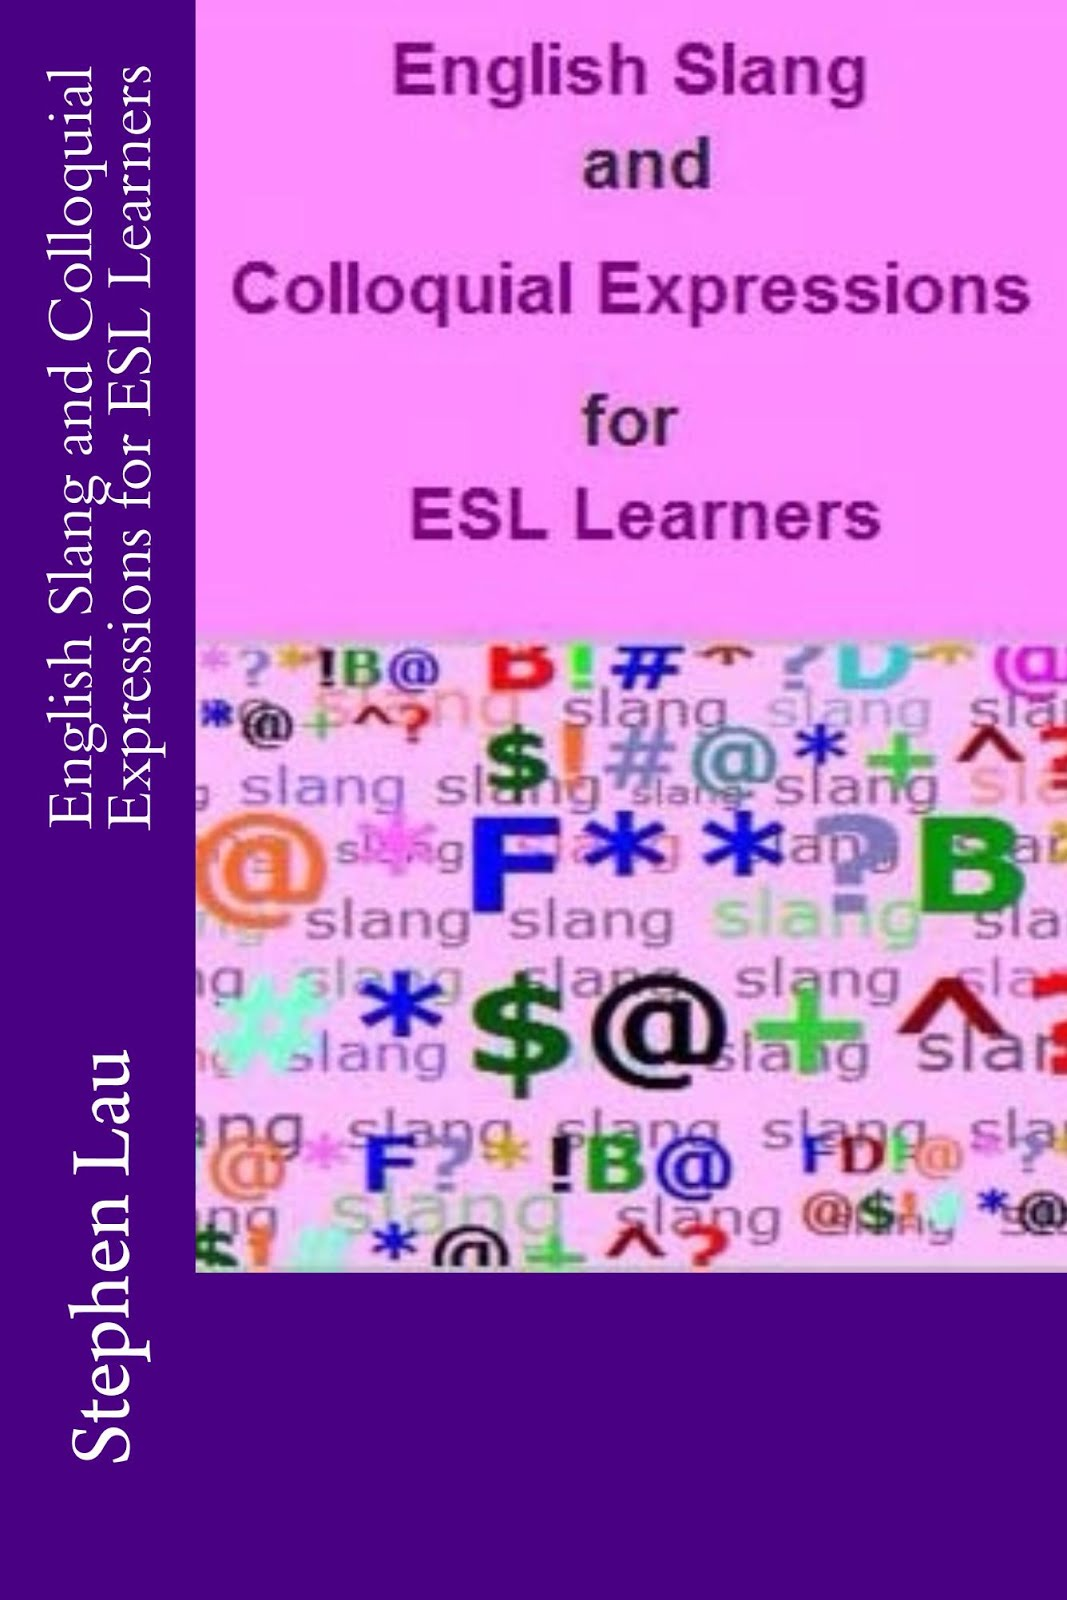 <b>English Slang and Colloquial Expressions for ESL Learners</b>